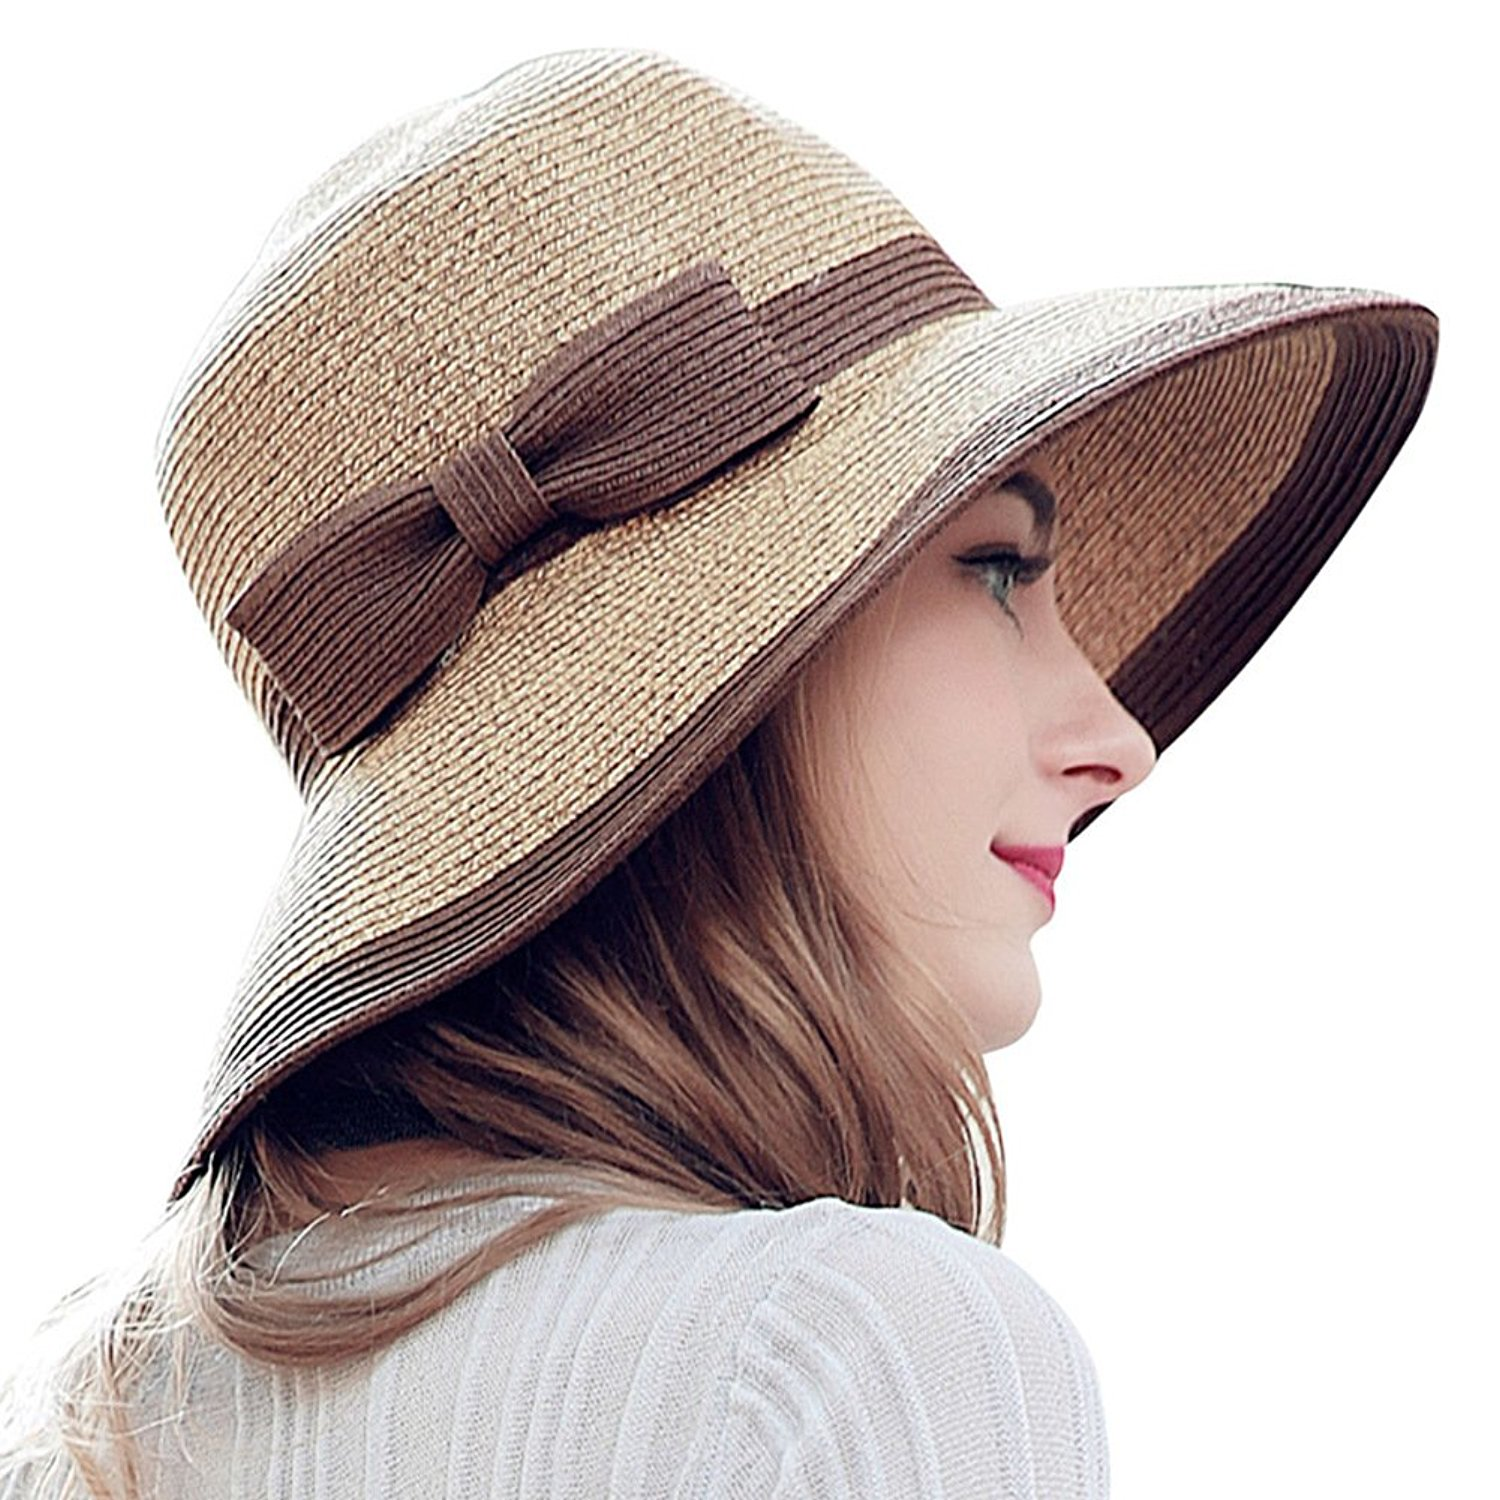 44028d4765f Get Quotations · Ladies summer sun hats Large straw hat Visor Summer Sun  can be folded